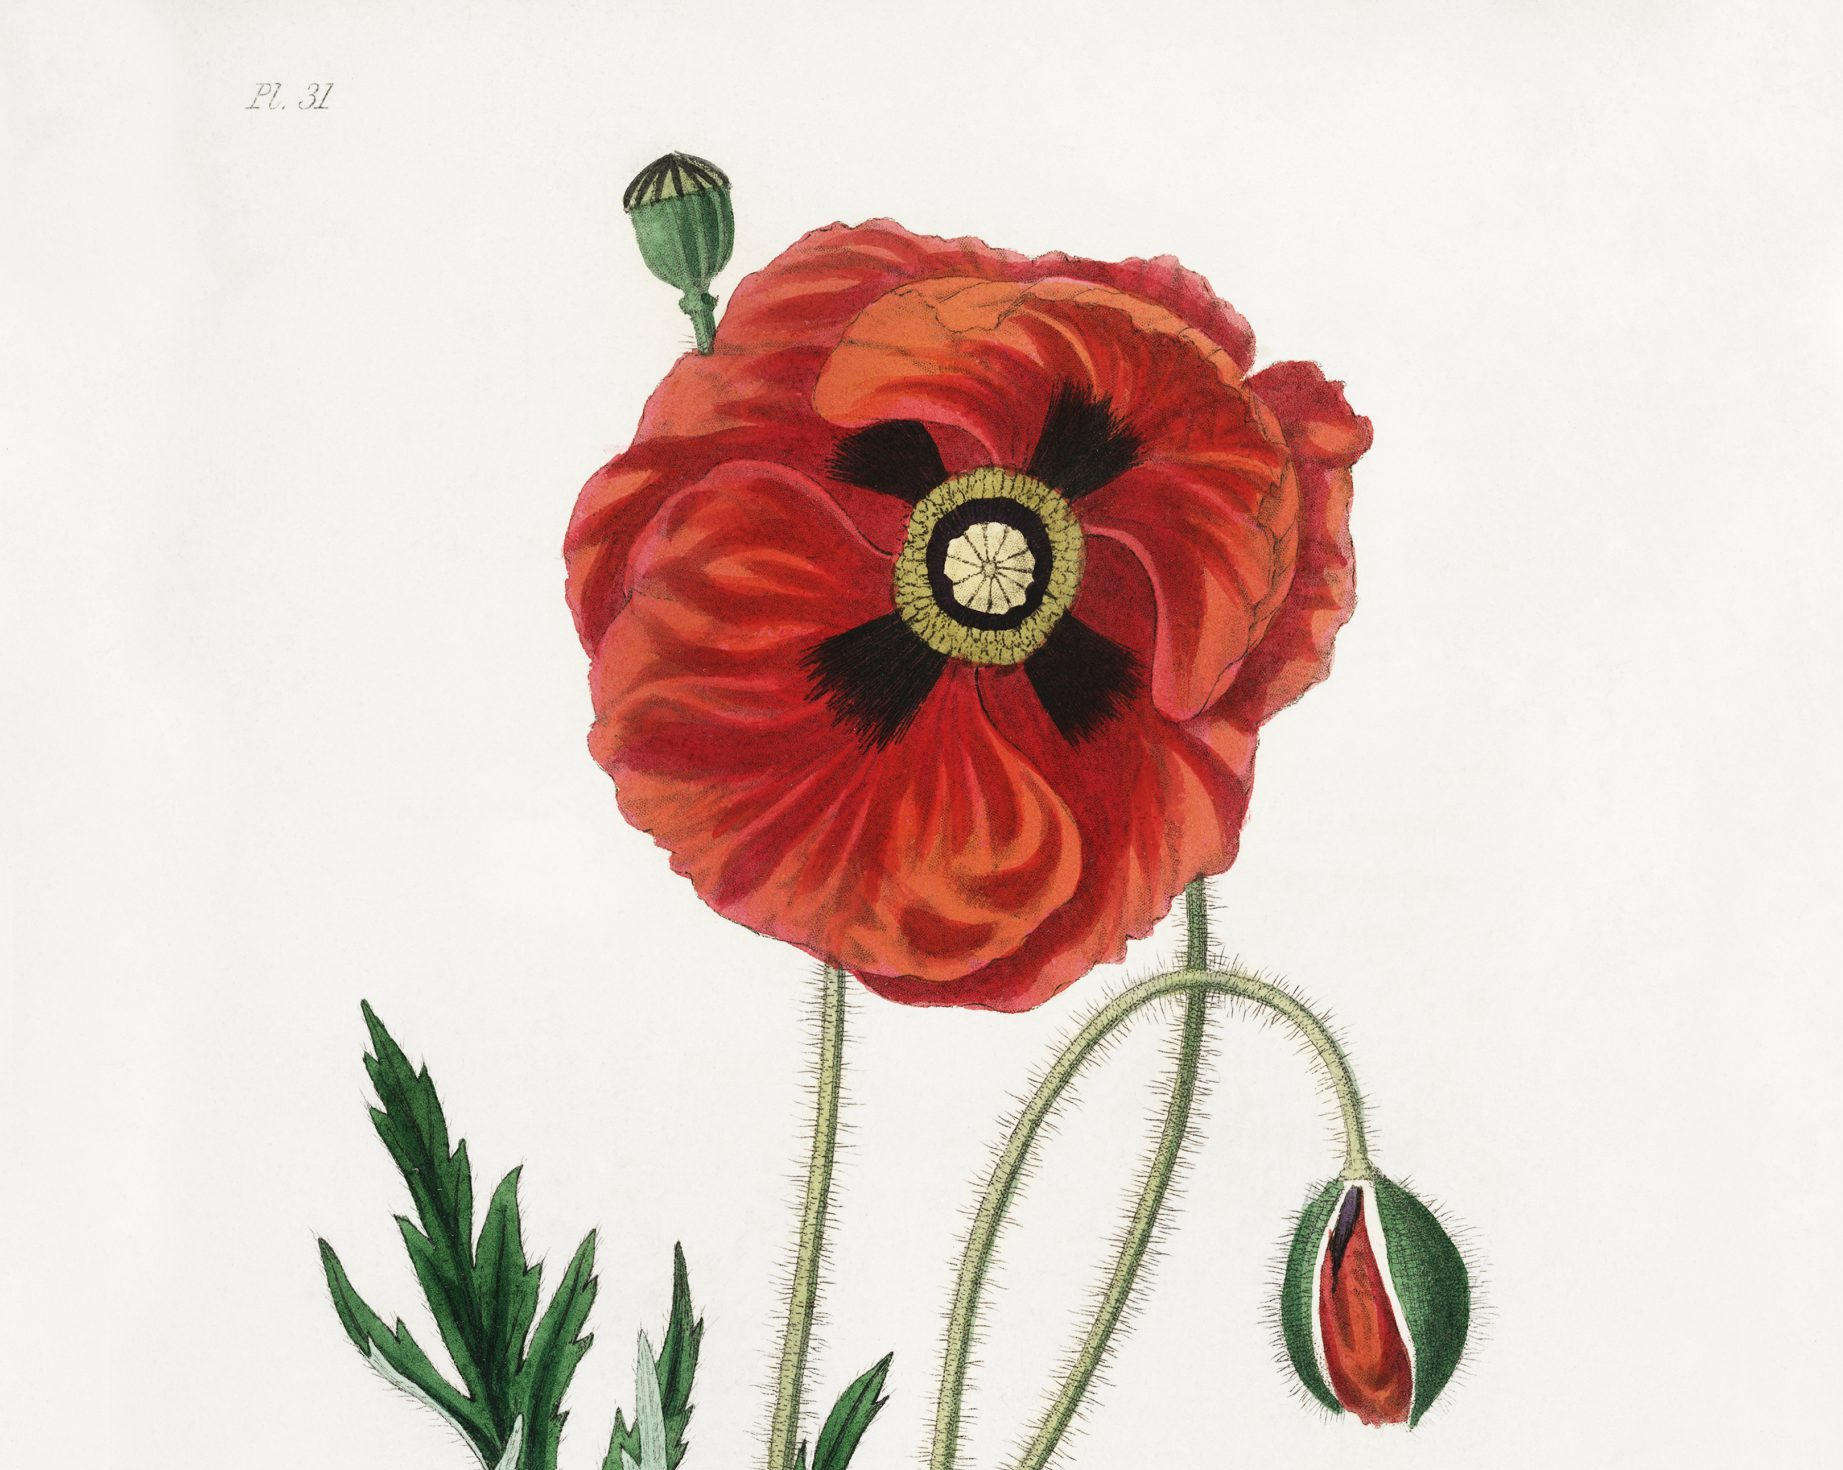 Oxygen in my tents | Amelia Rosselli's side of the story - Red Poppies